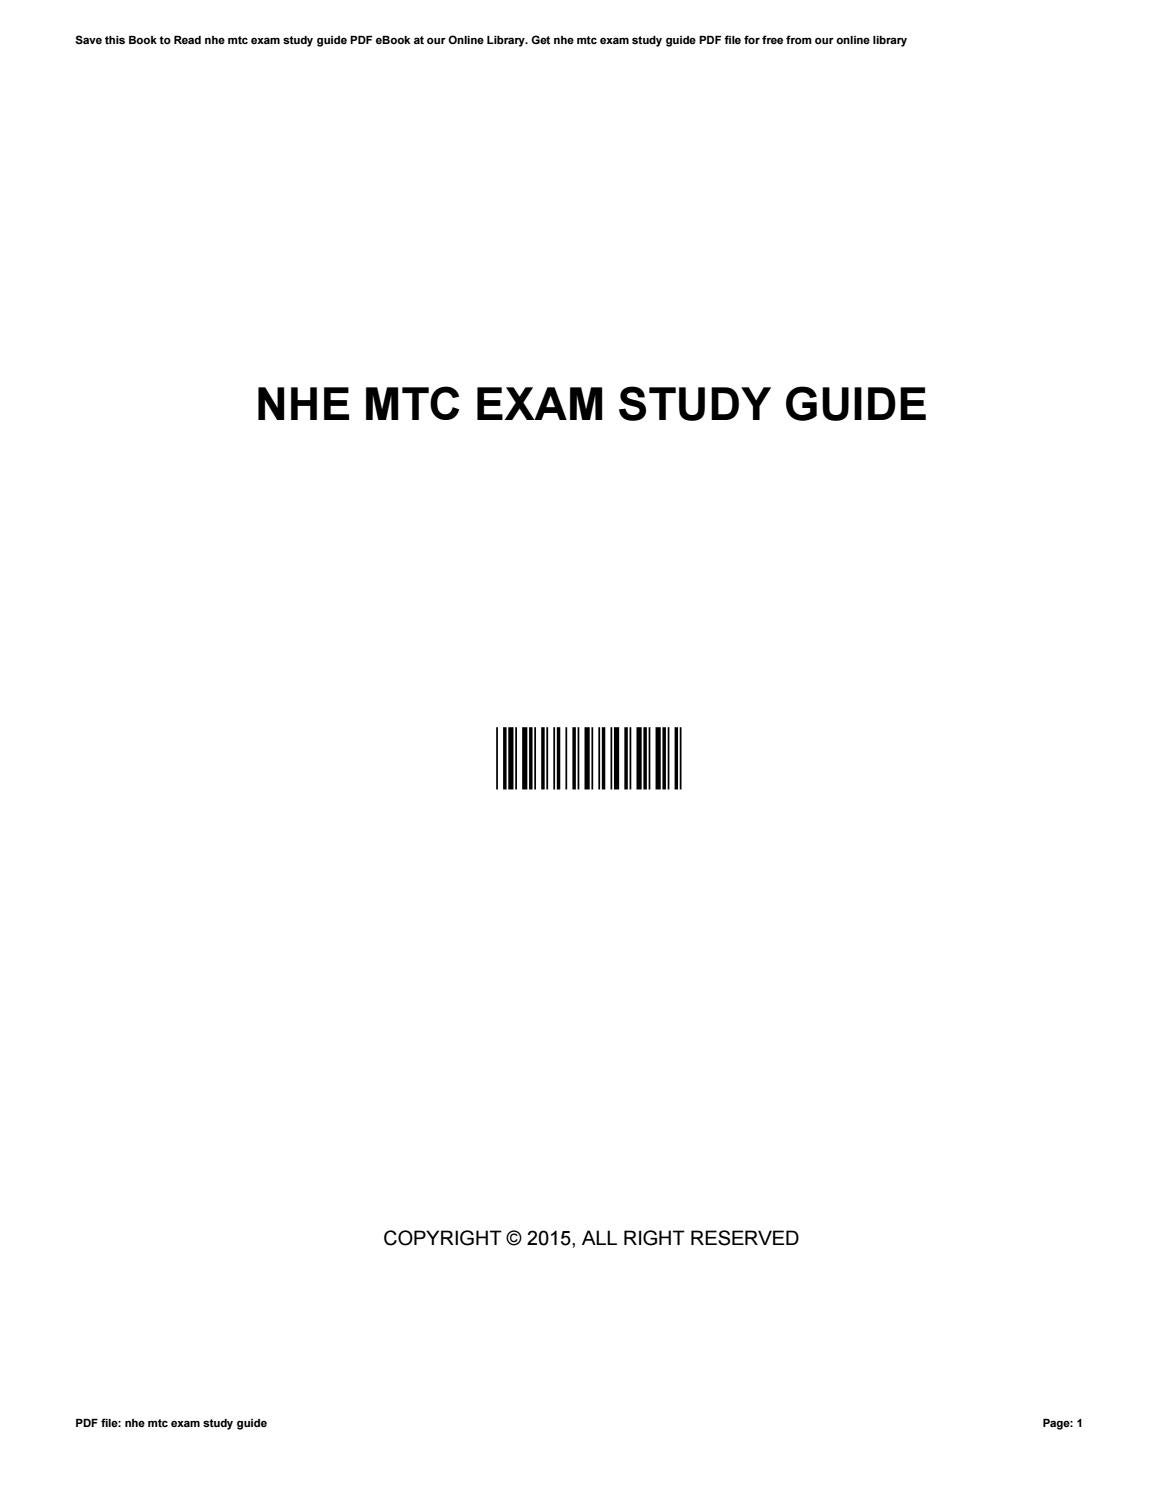 nhe mtc exam study guide by russpowell4857 issuu